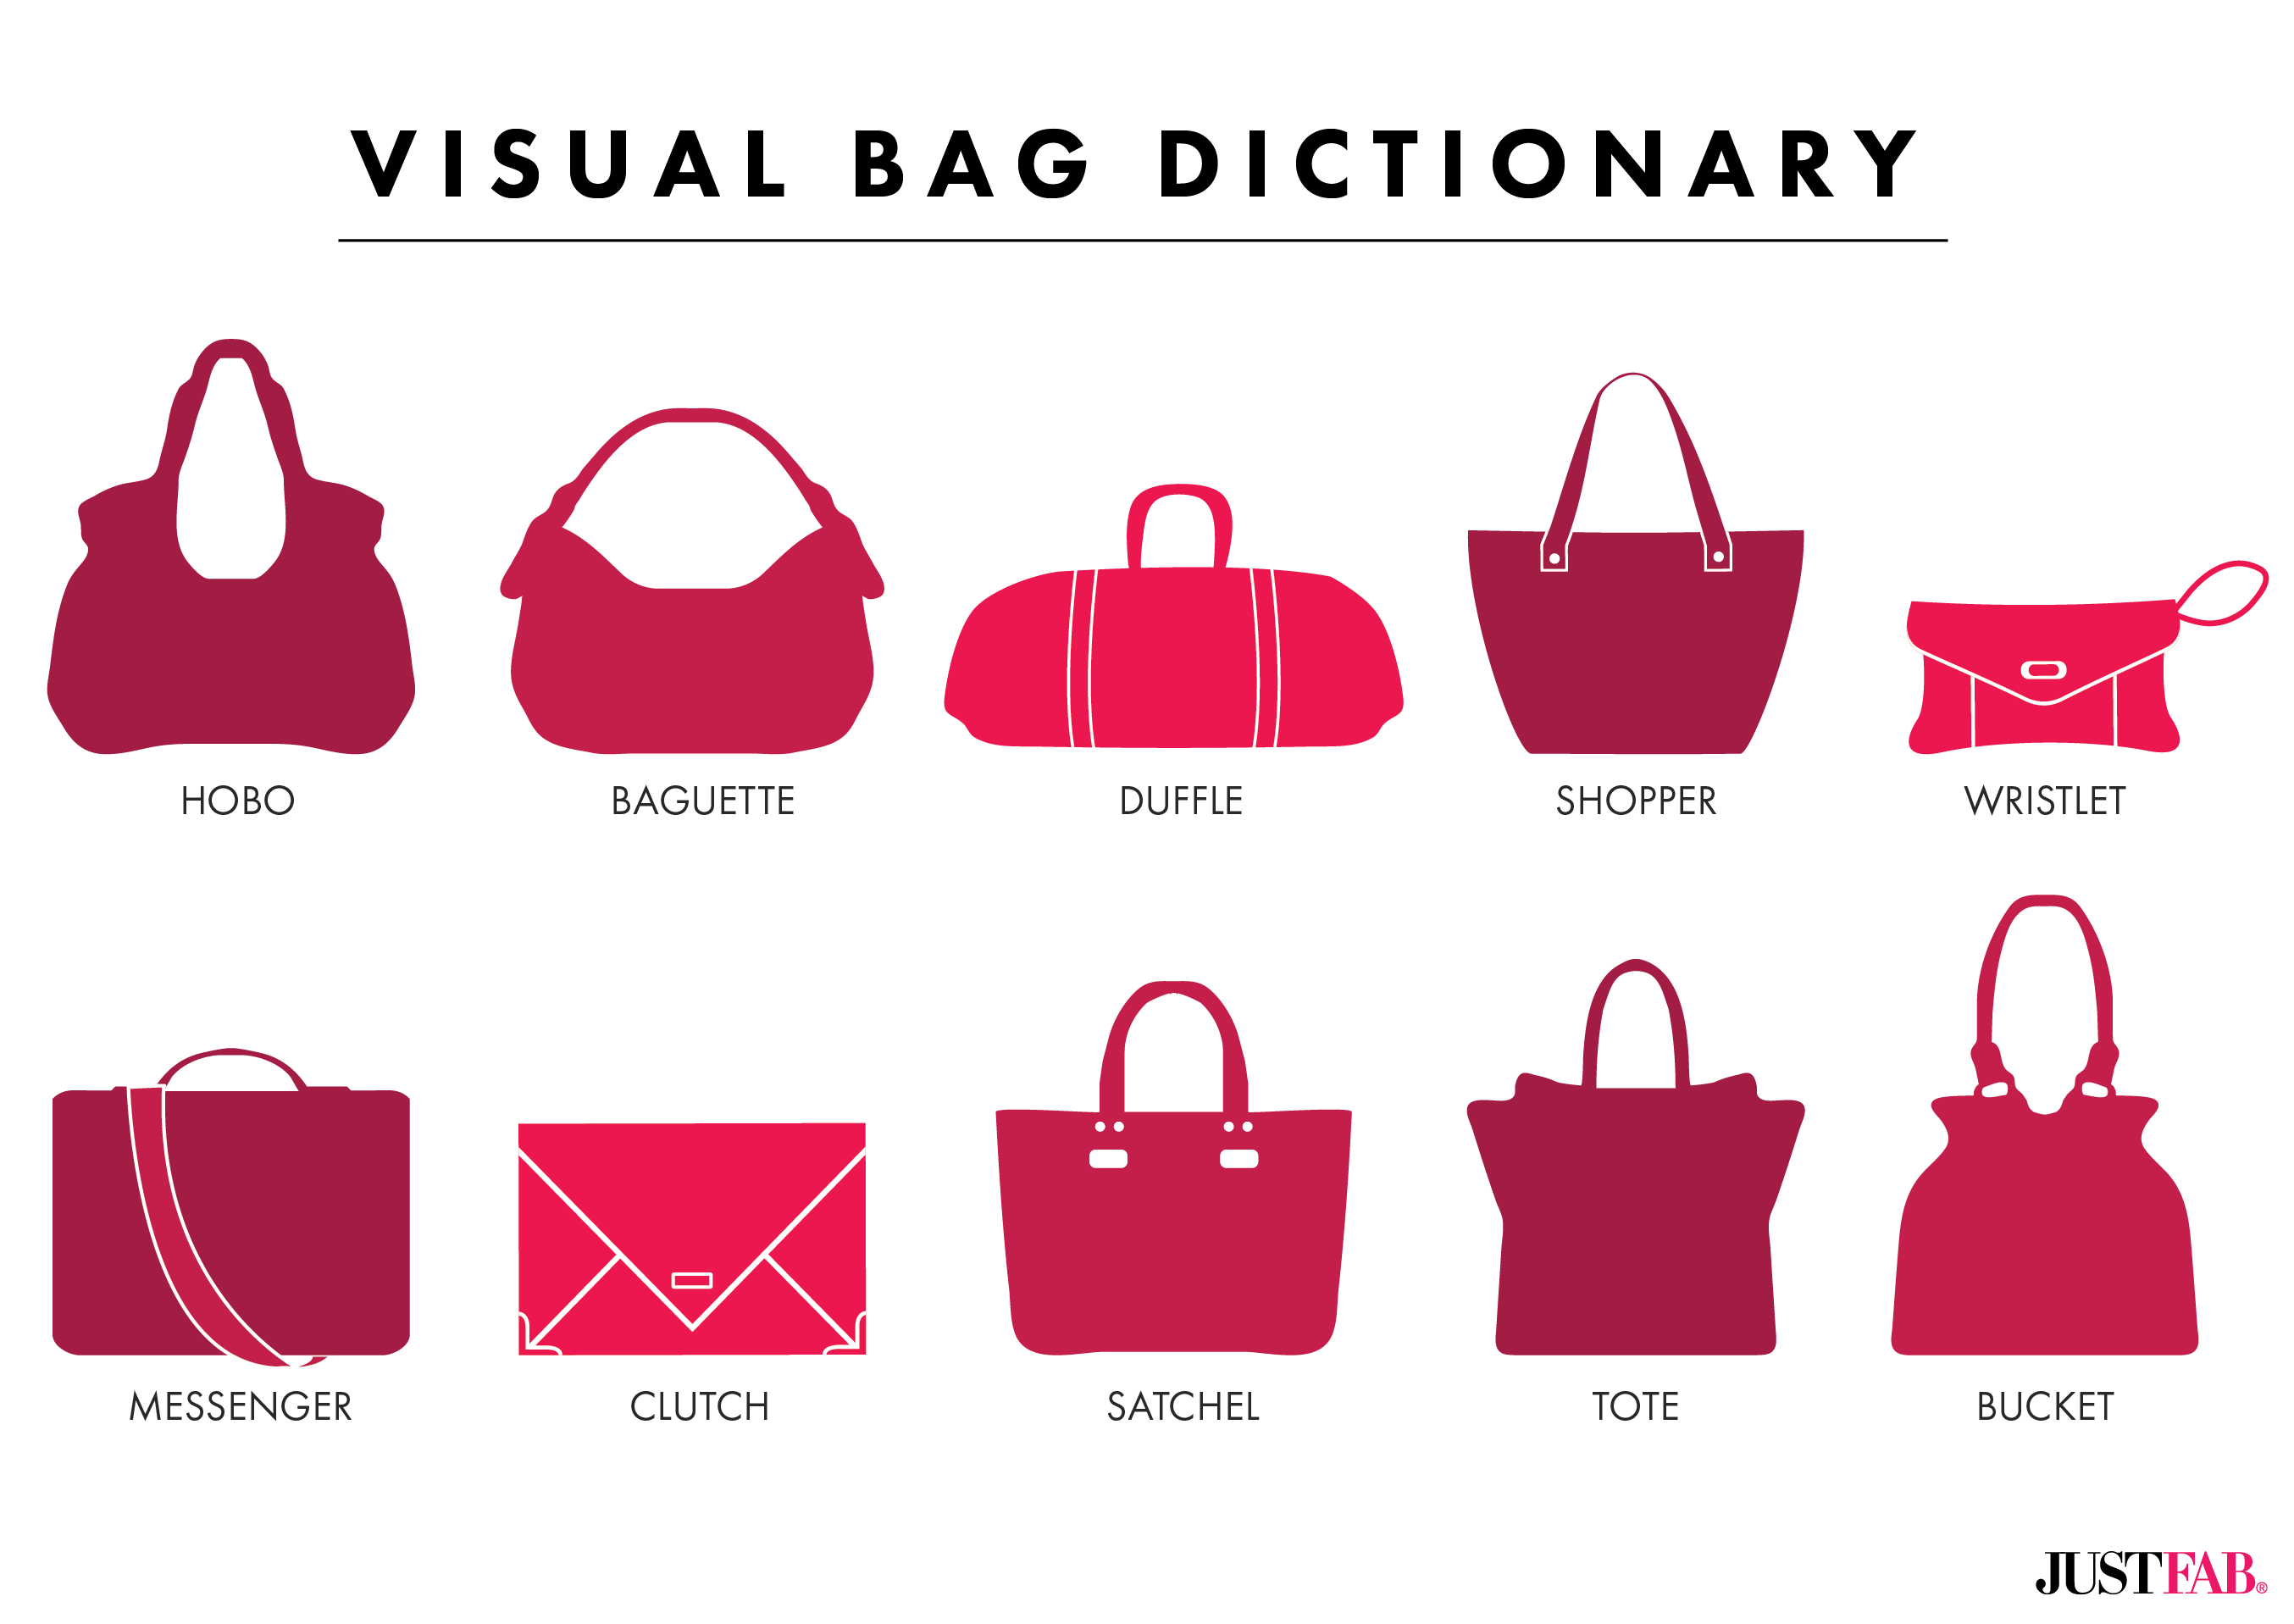 hight resolution of must know handbag terminology memorize keep it handy for the next time you